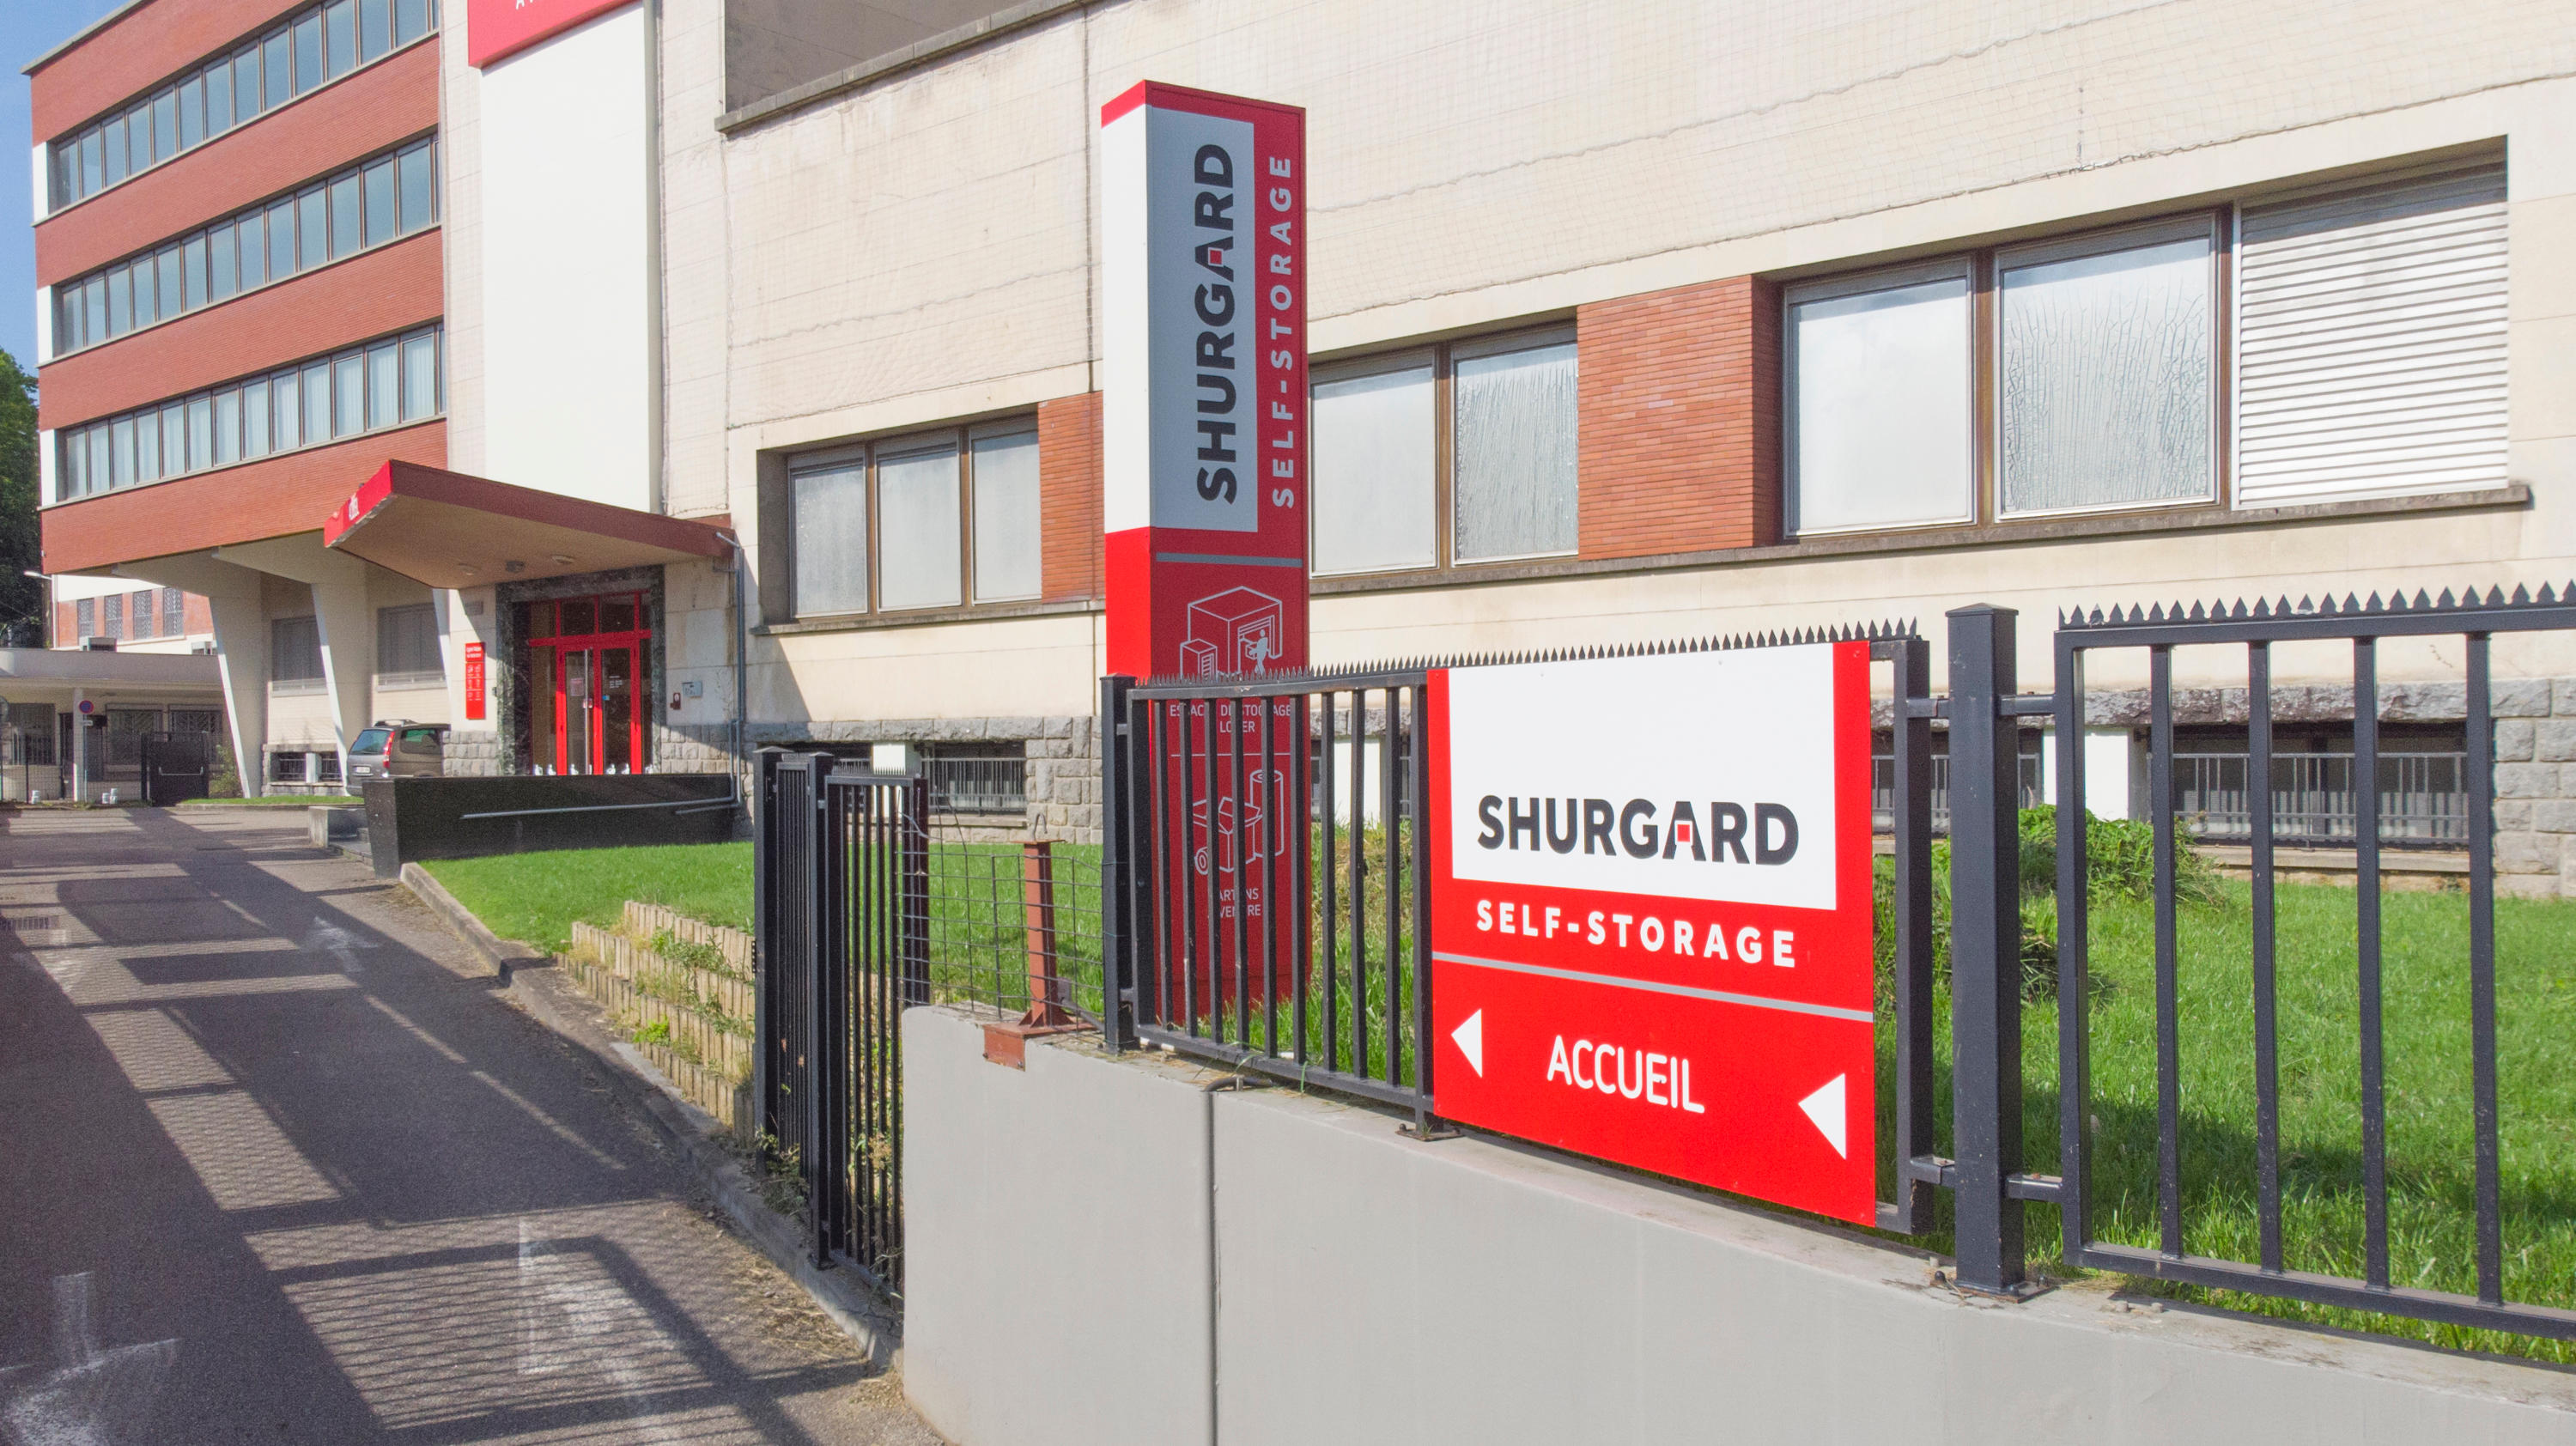 Shurgard Self-Storage Lyon Vaise